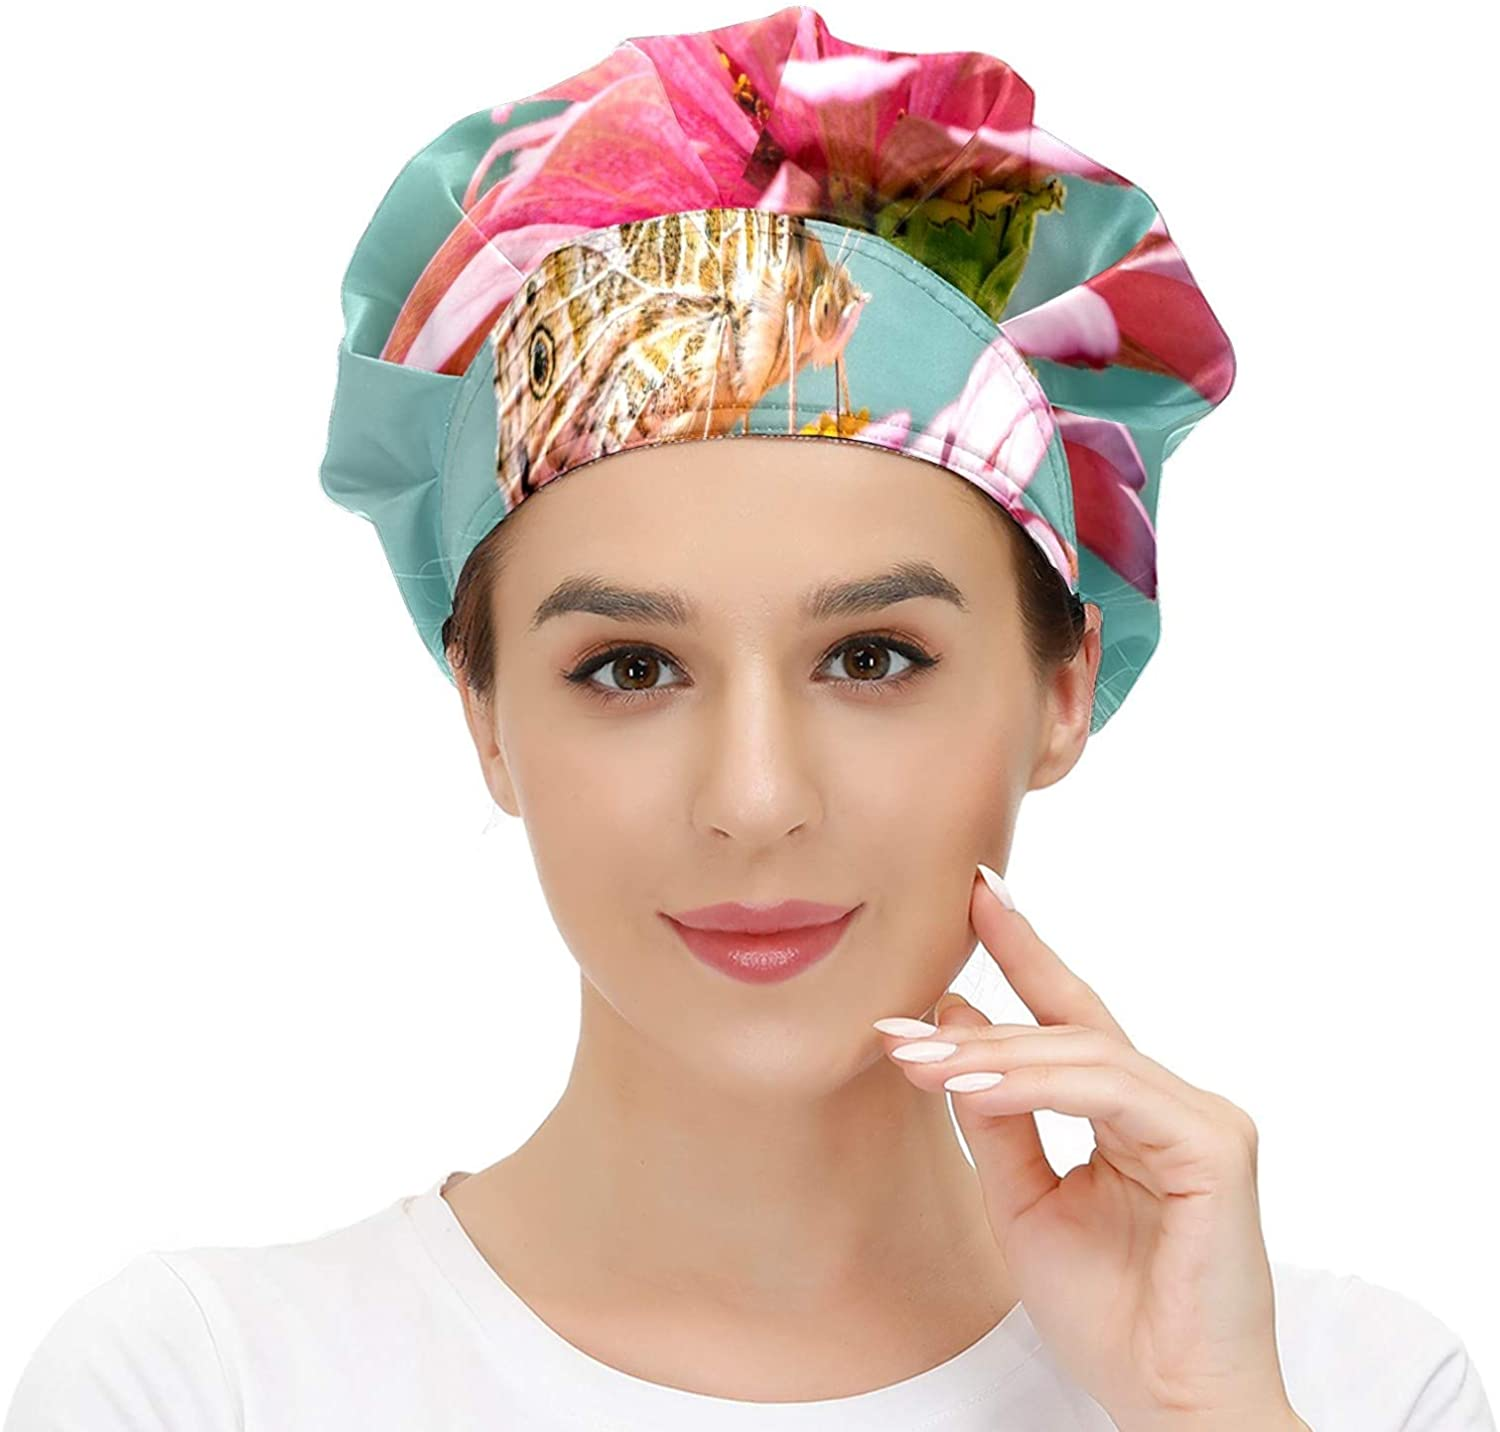 Women Cap Working Hat with Sweatband Butterfly Nature Elastic Adjustable Working Caps for Woman Men One Size Working Head Scarf Multi Color